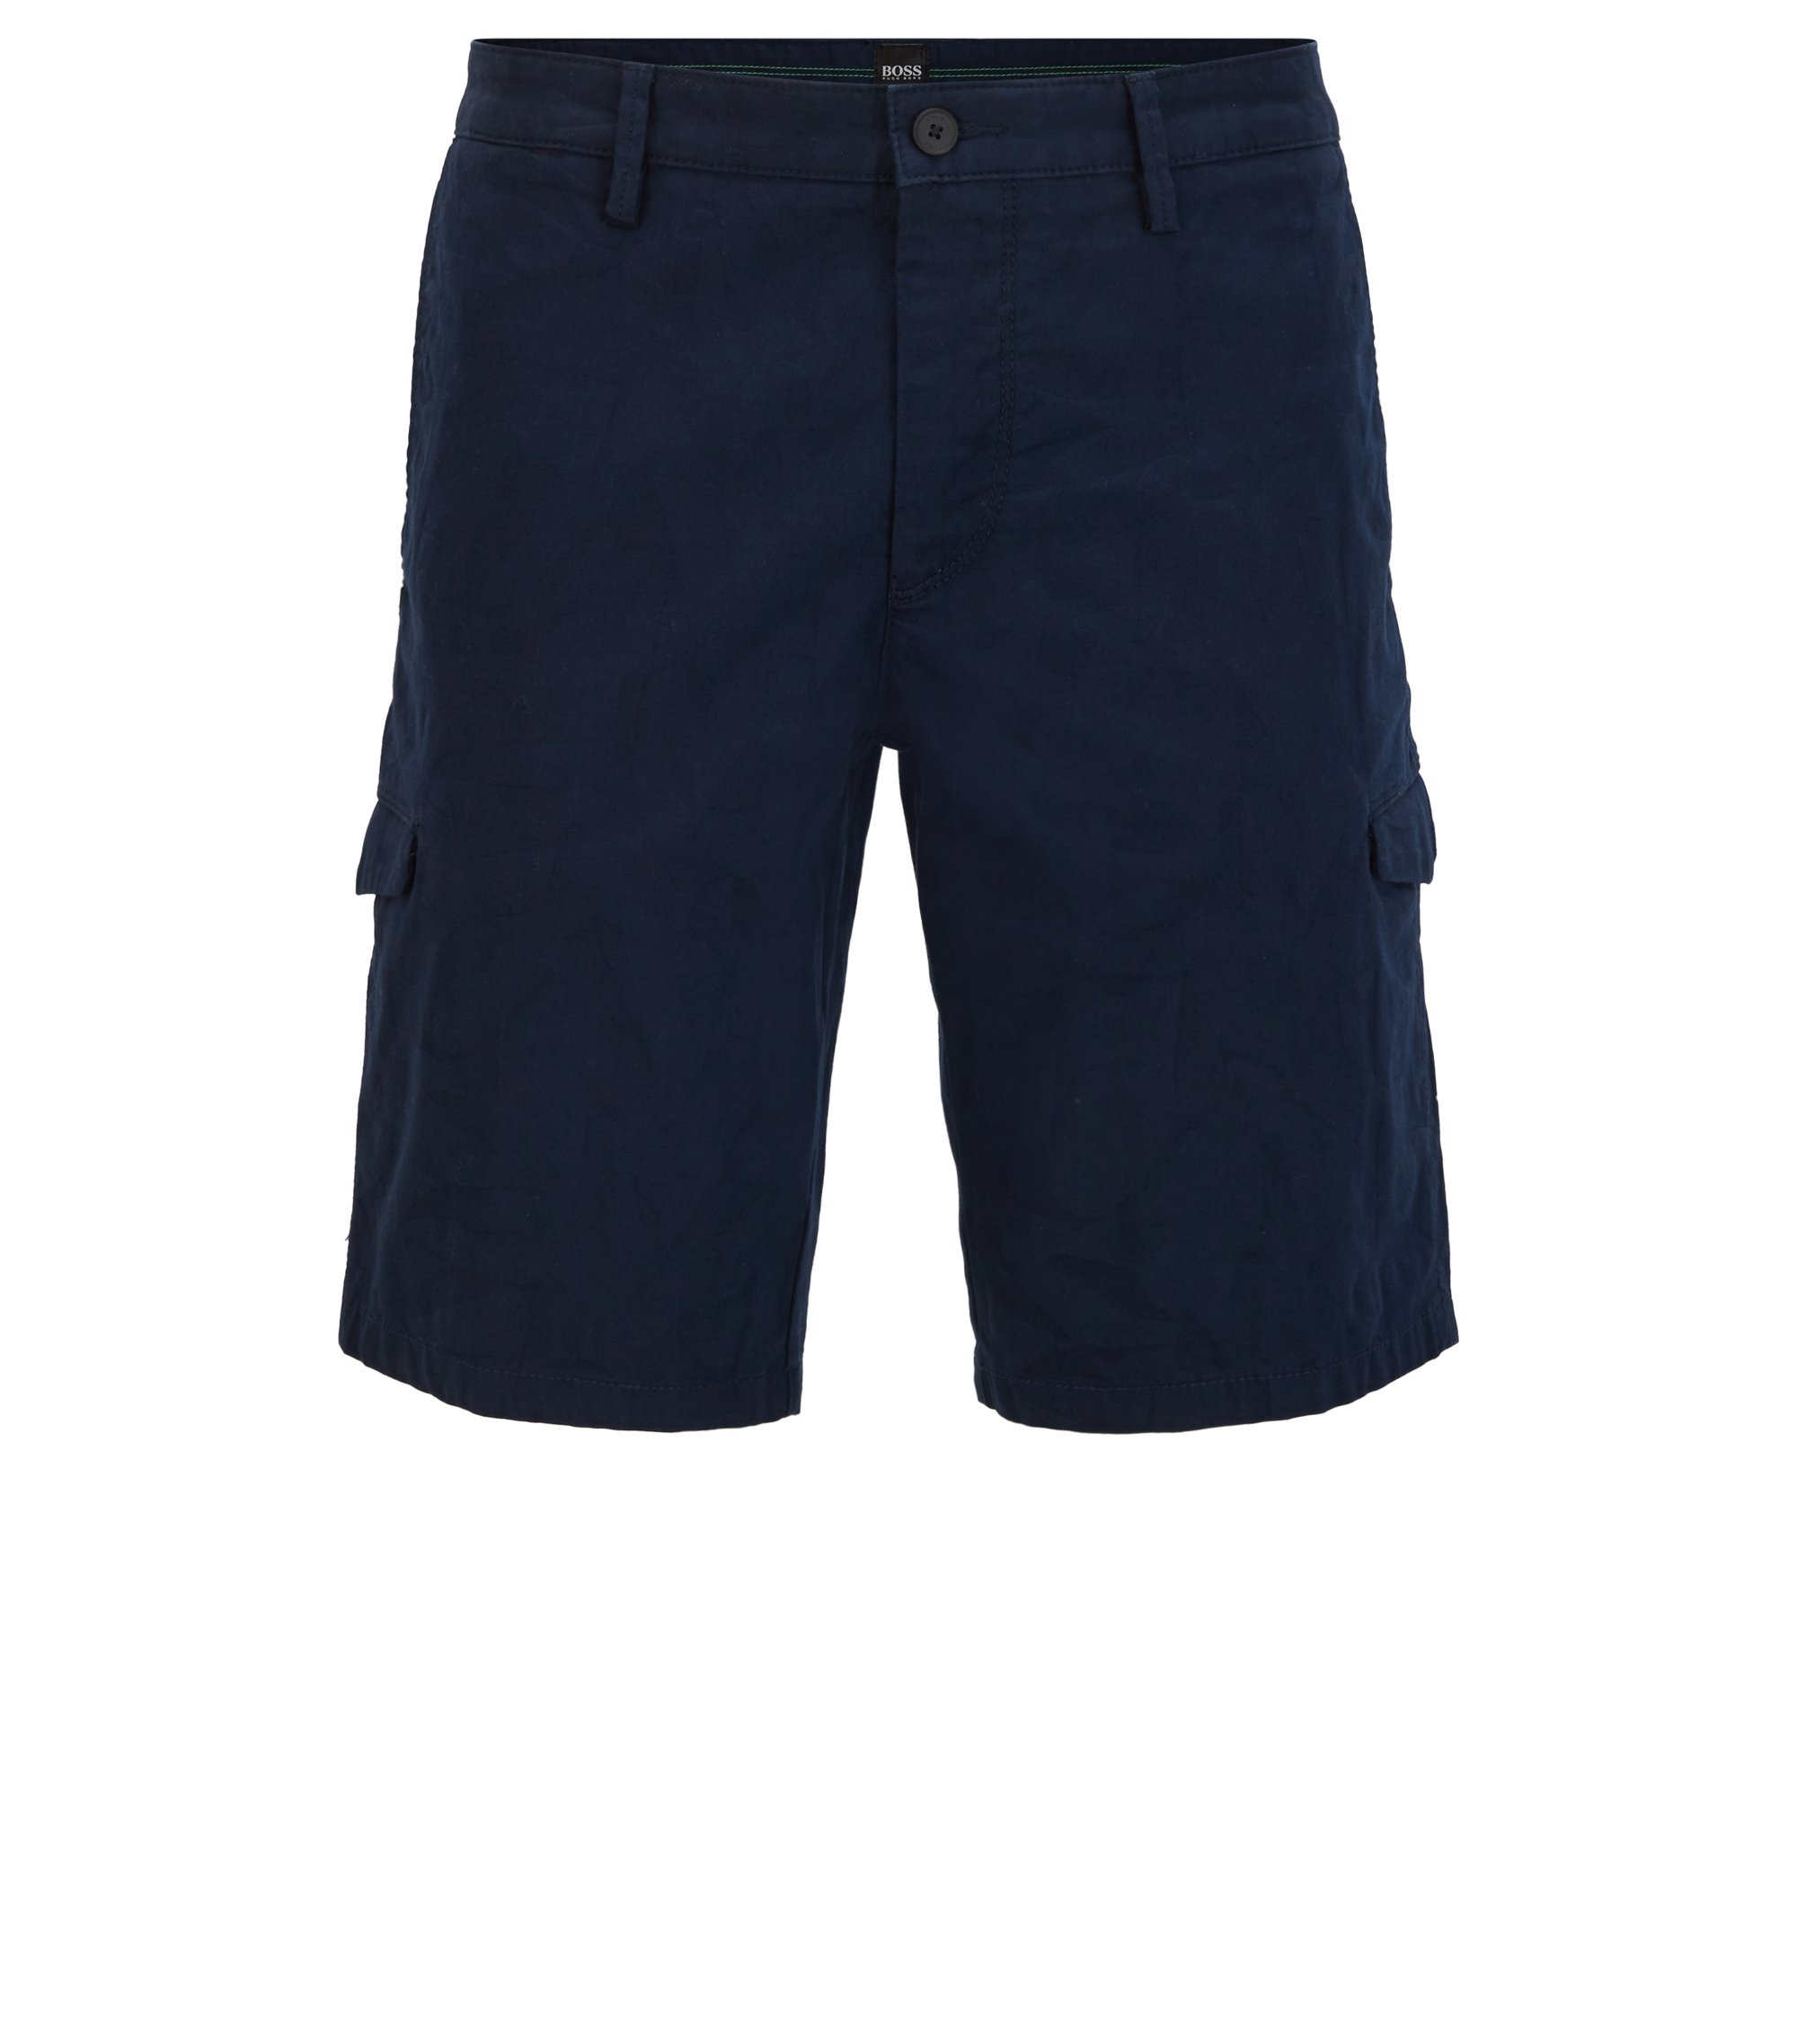 Slim-fit shorts with concealable pocket flaps, Dark Blue